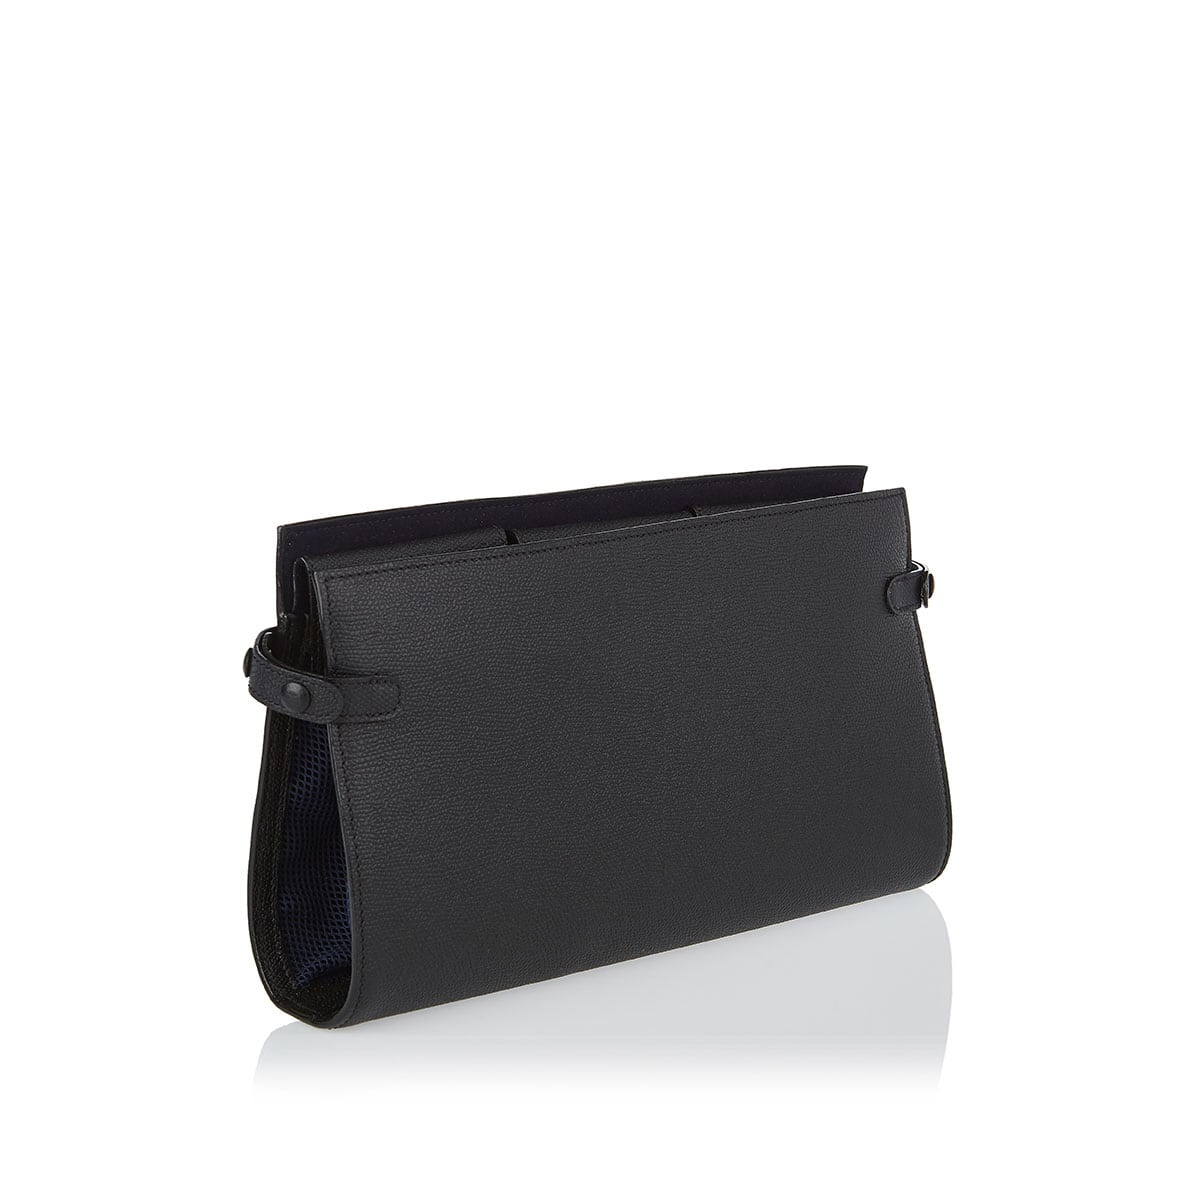 Cable organizer pouch